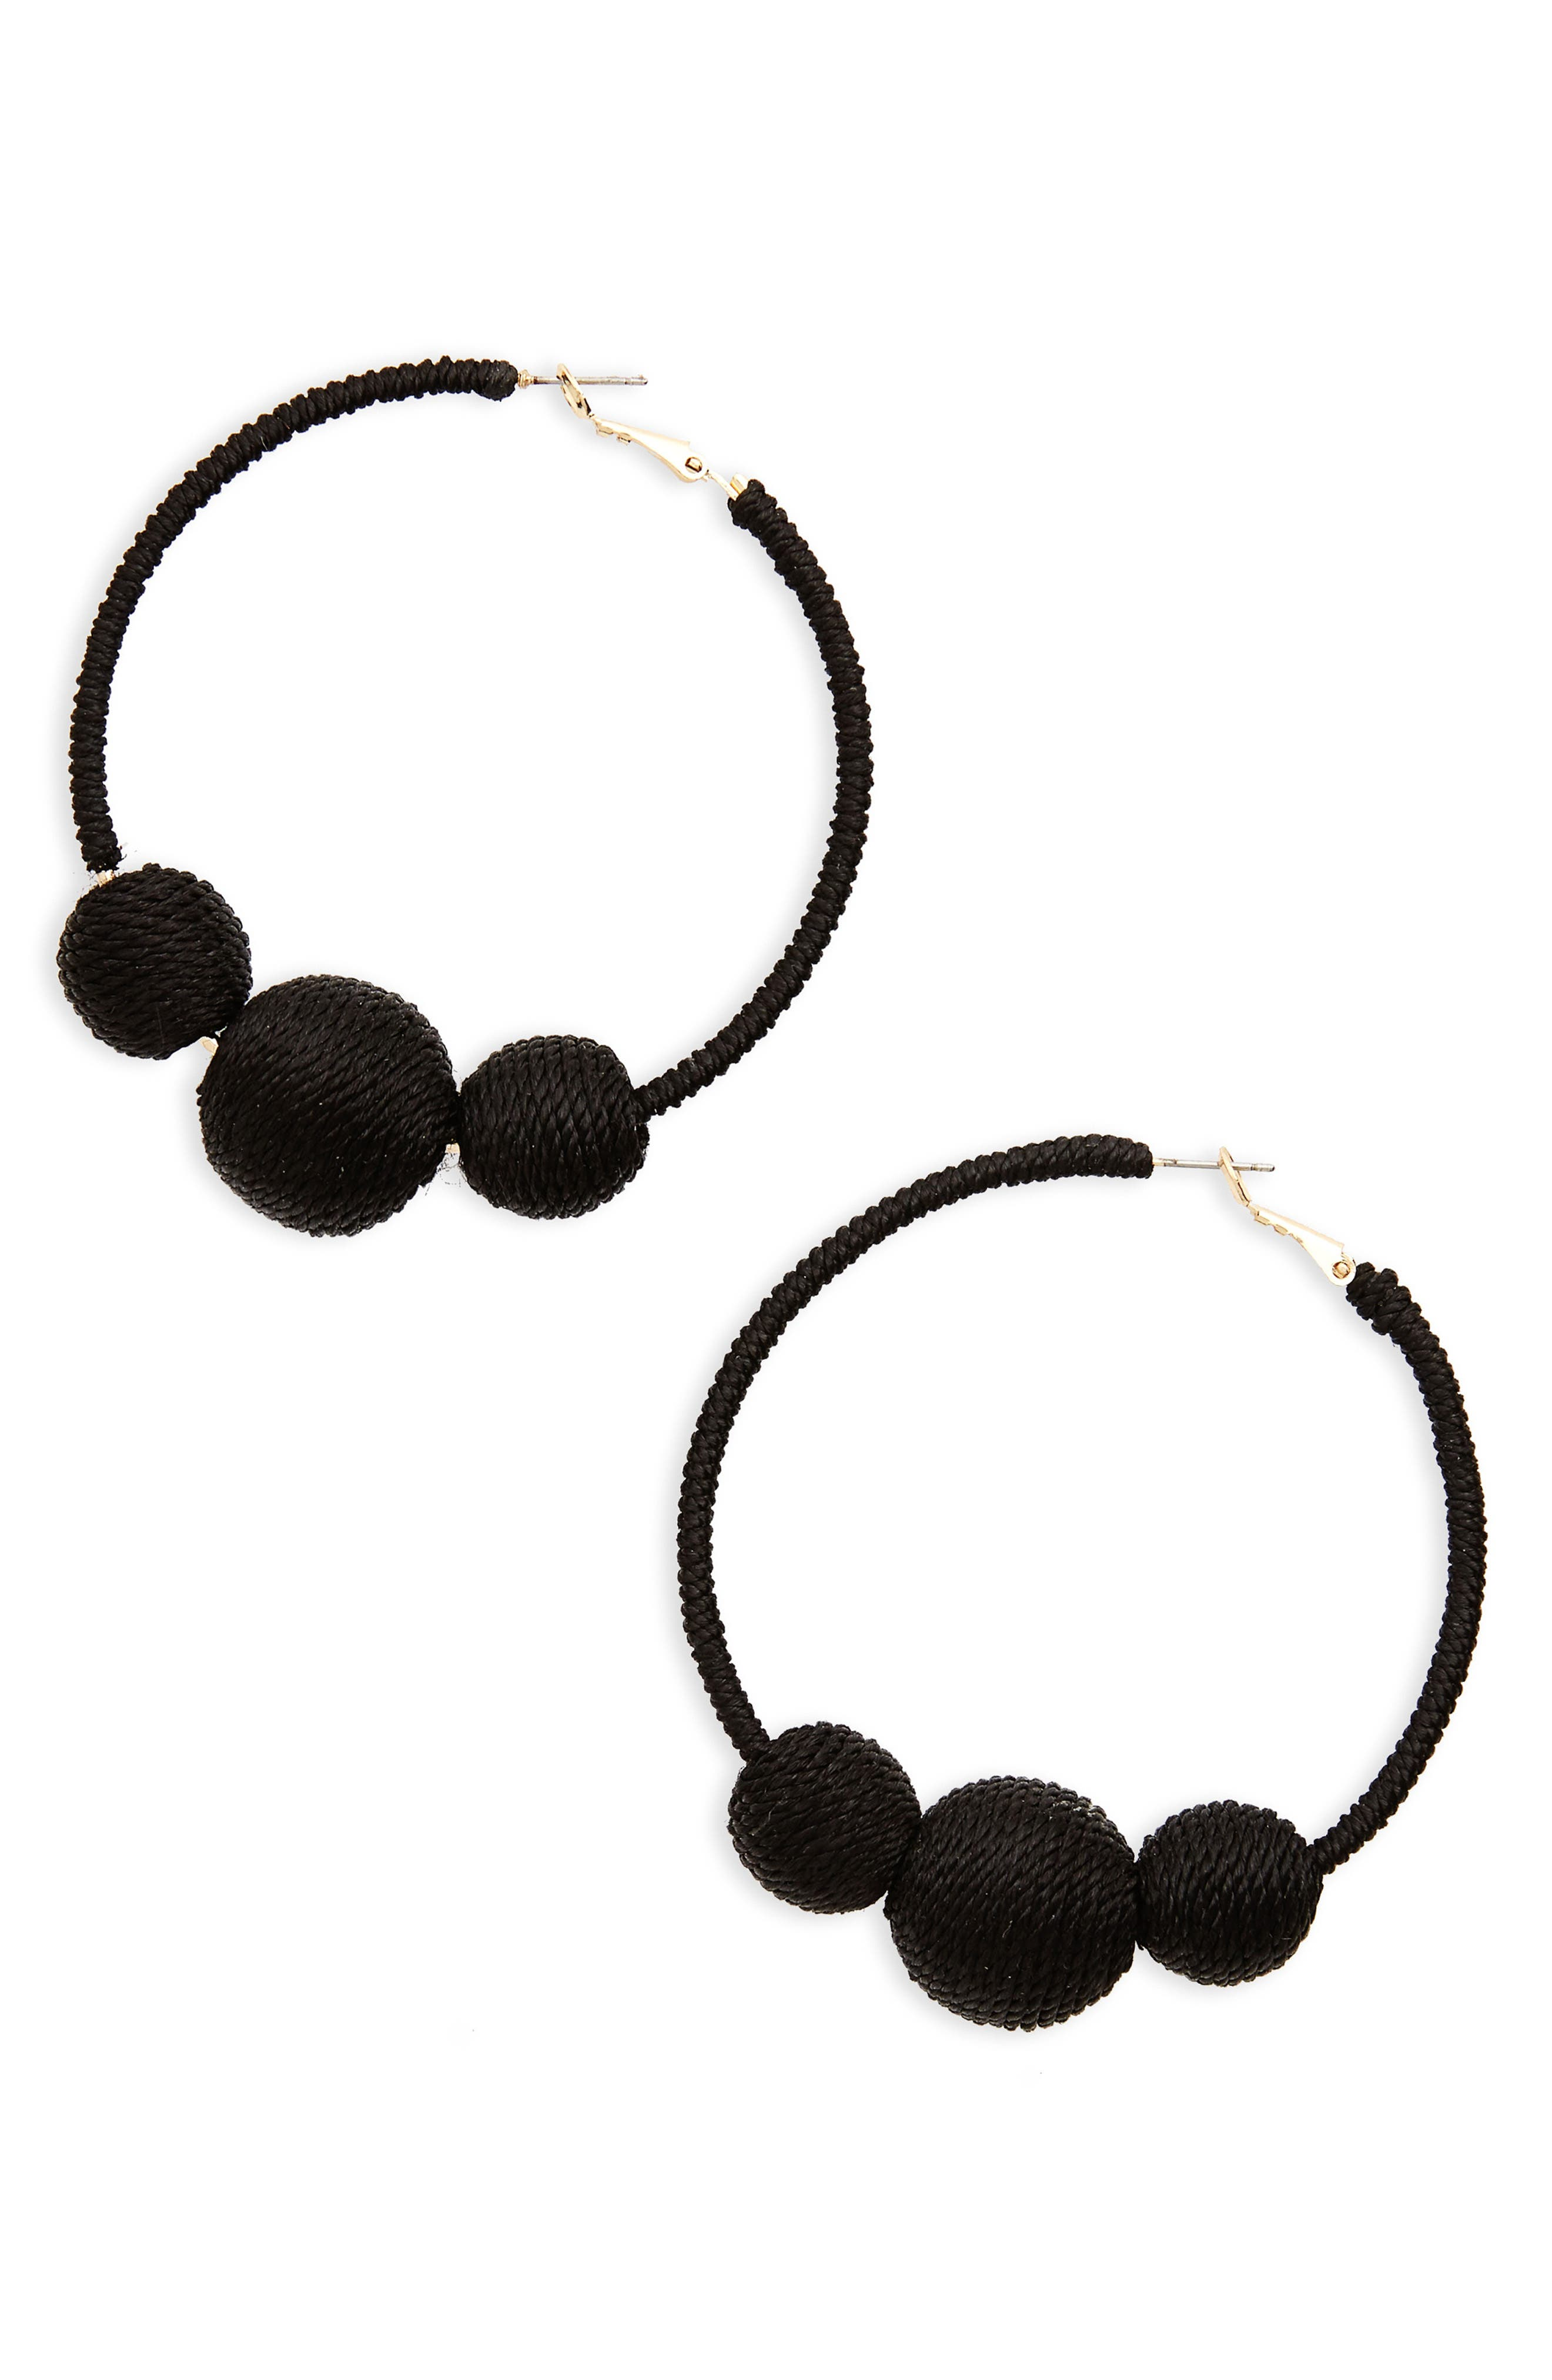 Wrapped Ball Hoop Earrings,                             Main thumbnail 1, color,                             Black